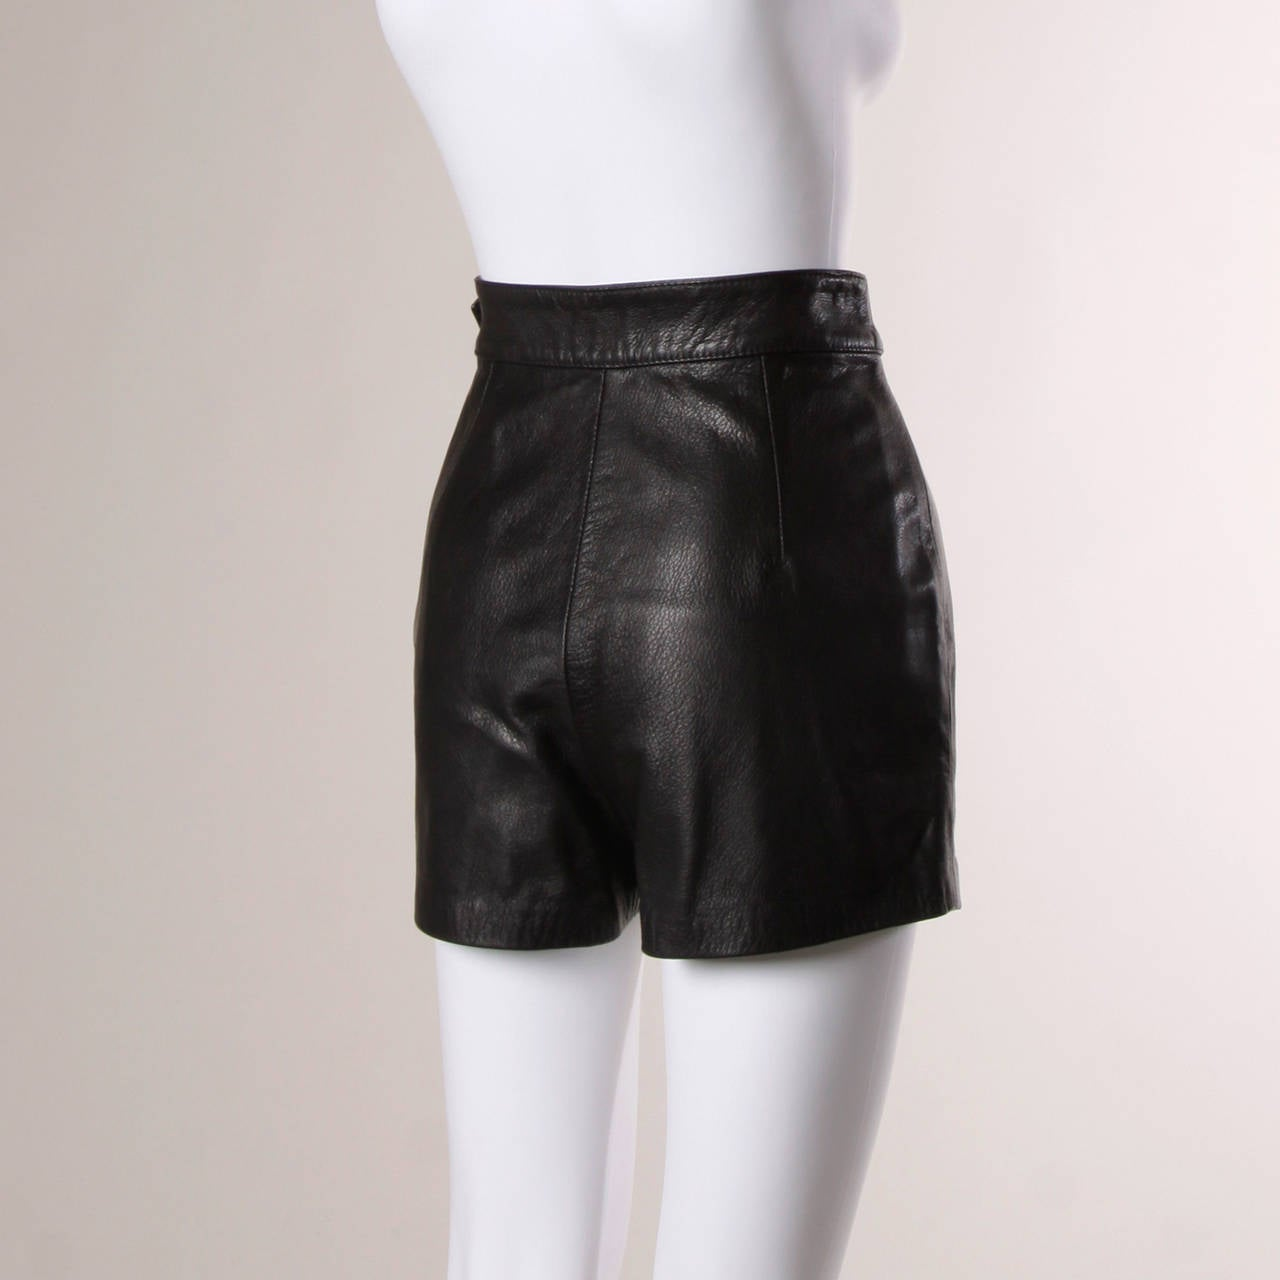 Moschino Vintage Black Leather High Waisted Shorts 5